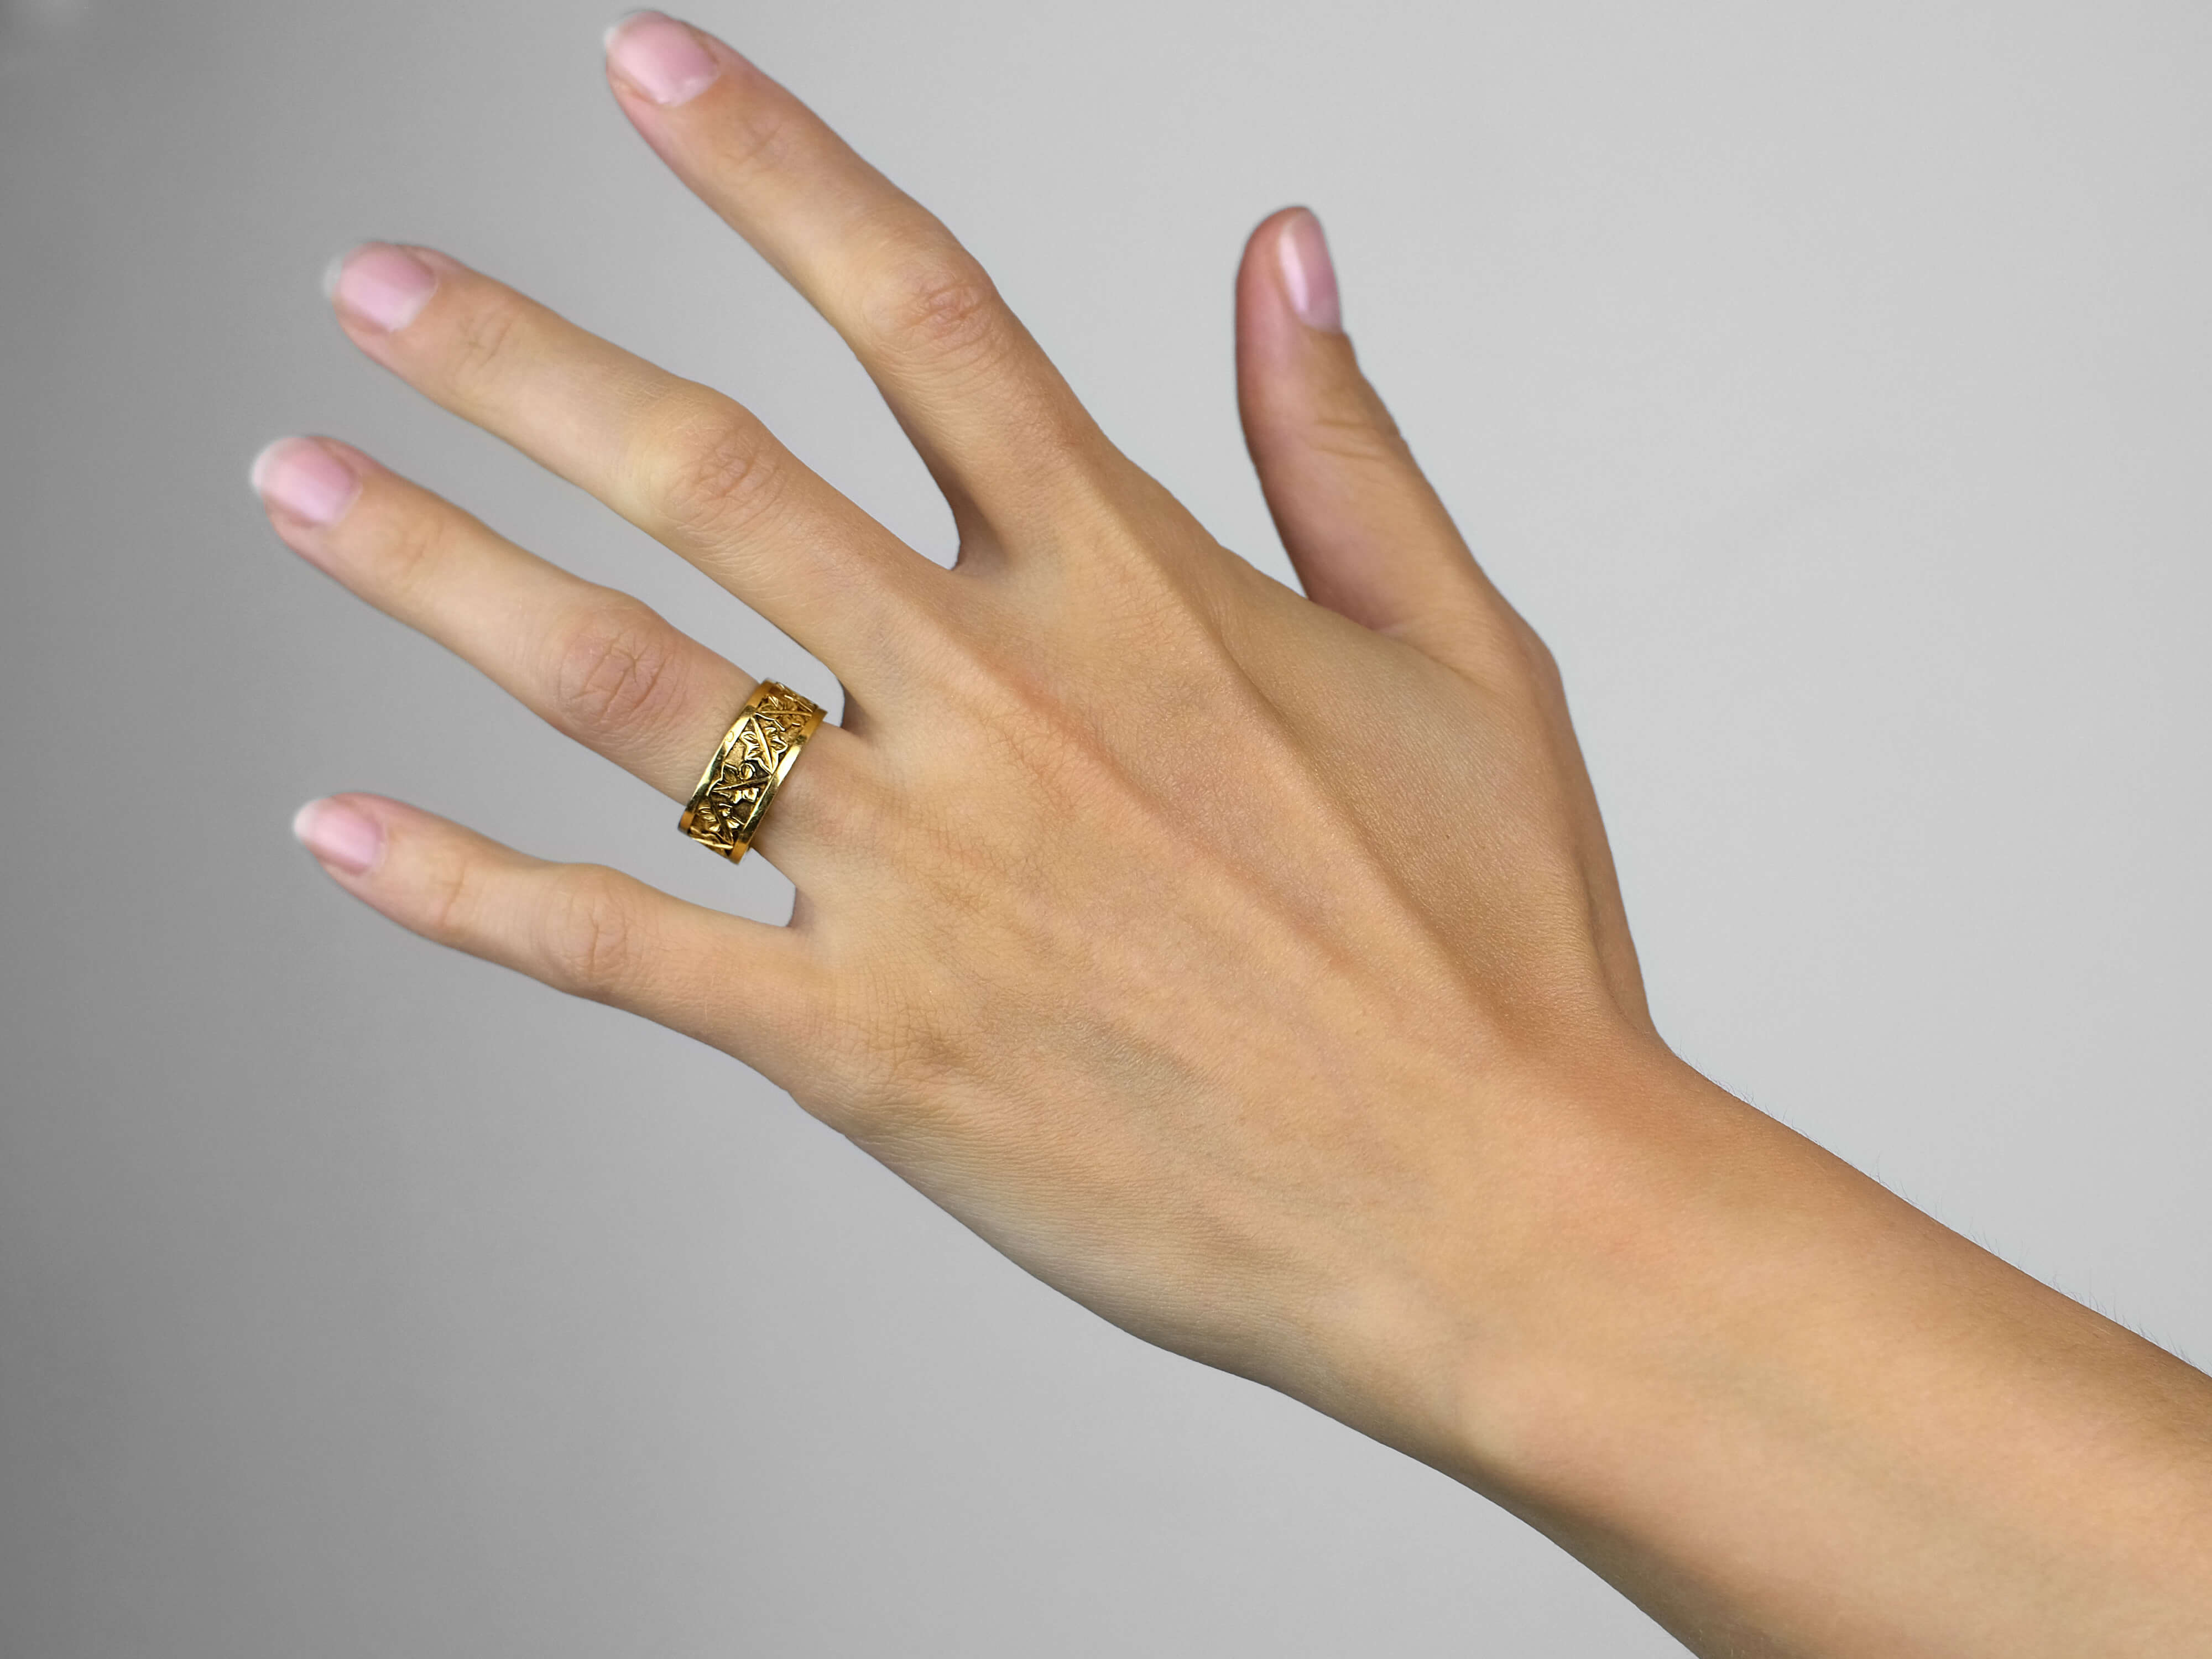 18ct Gold Ring with Ivy Leaf Design